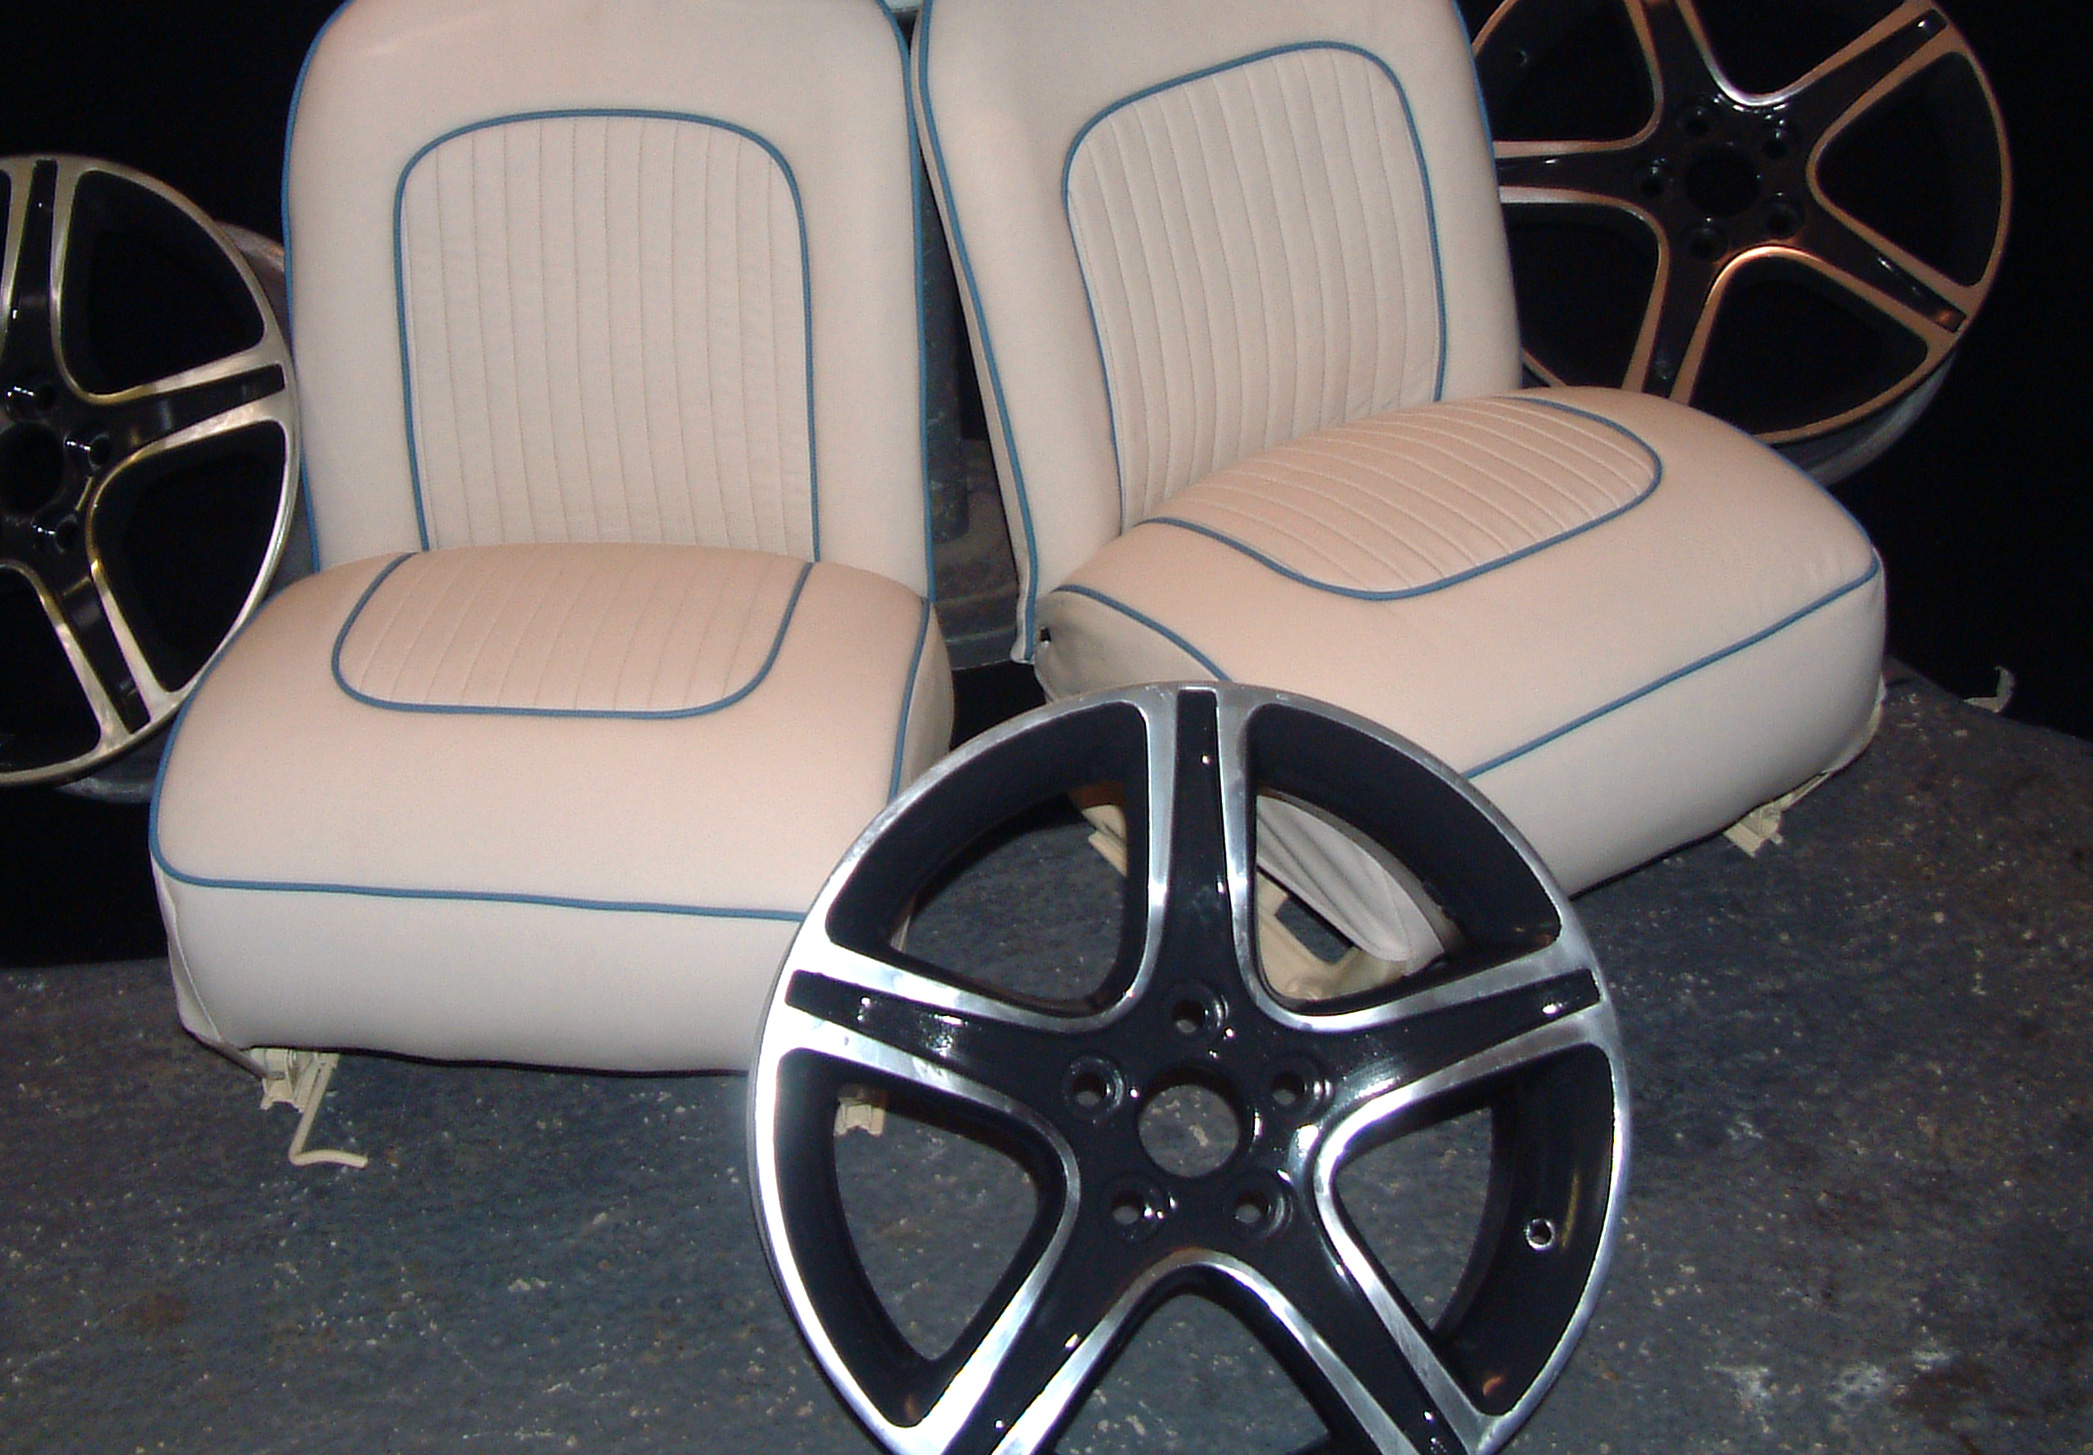 White+leather+seats+with+blue+piping